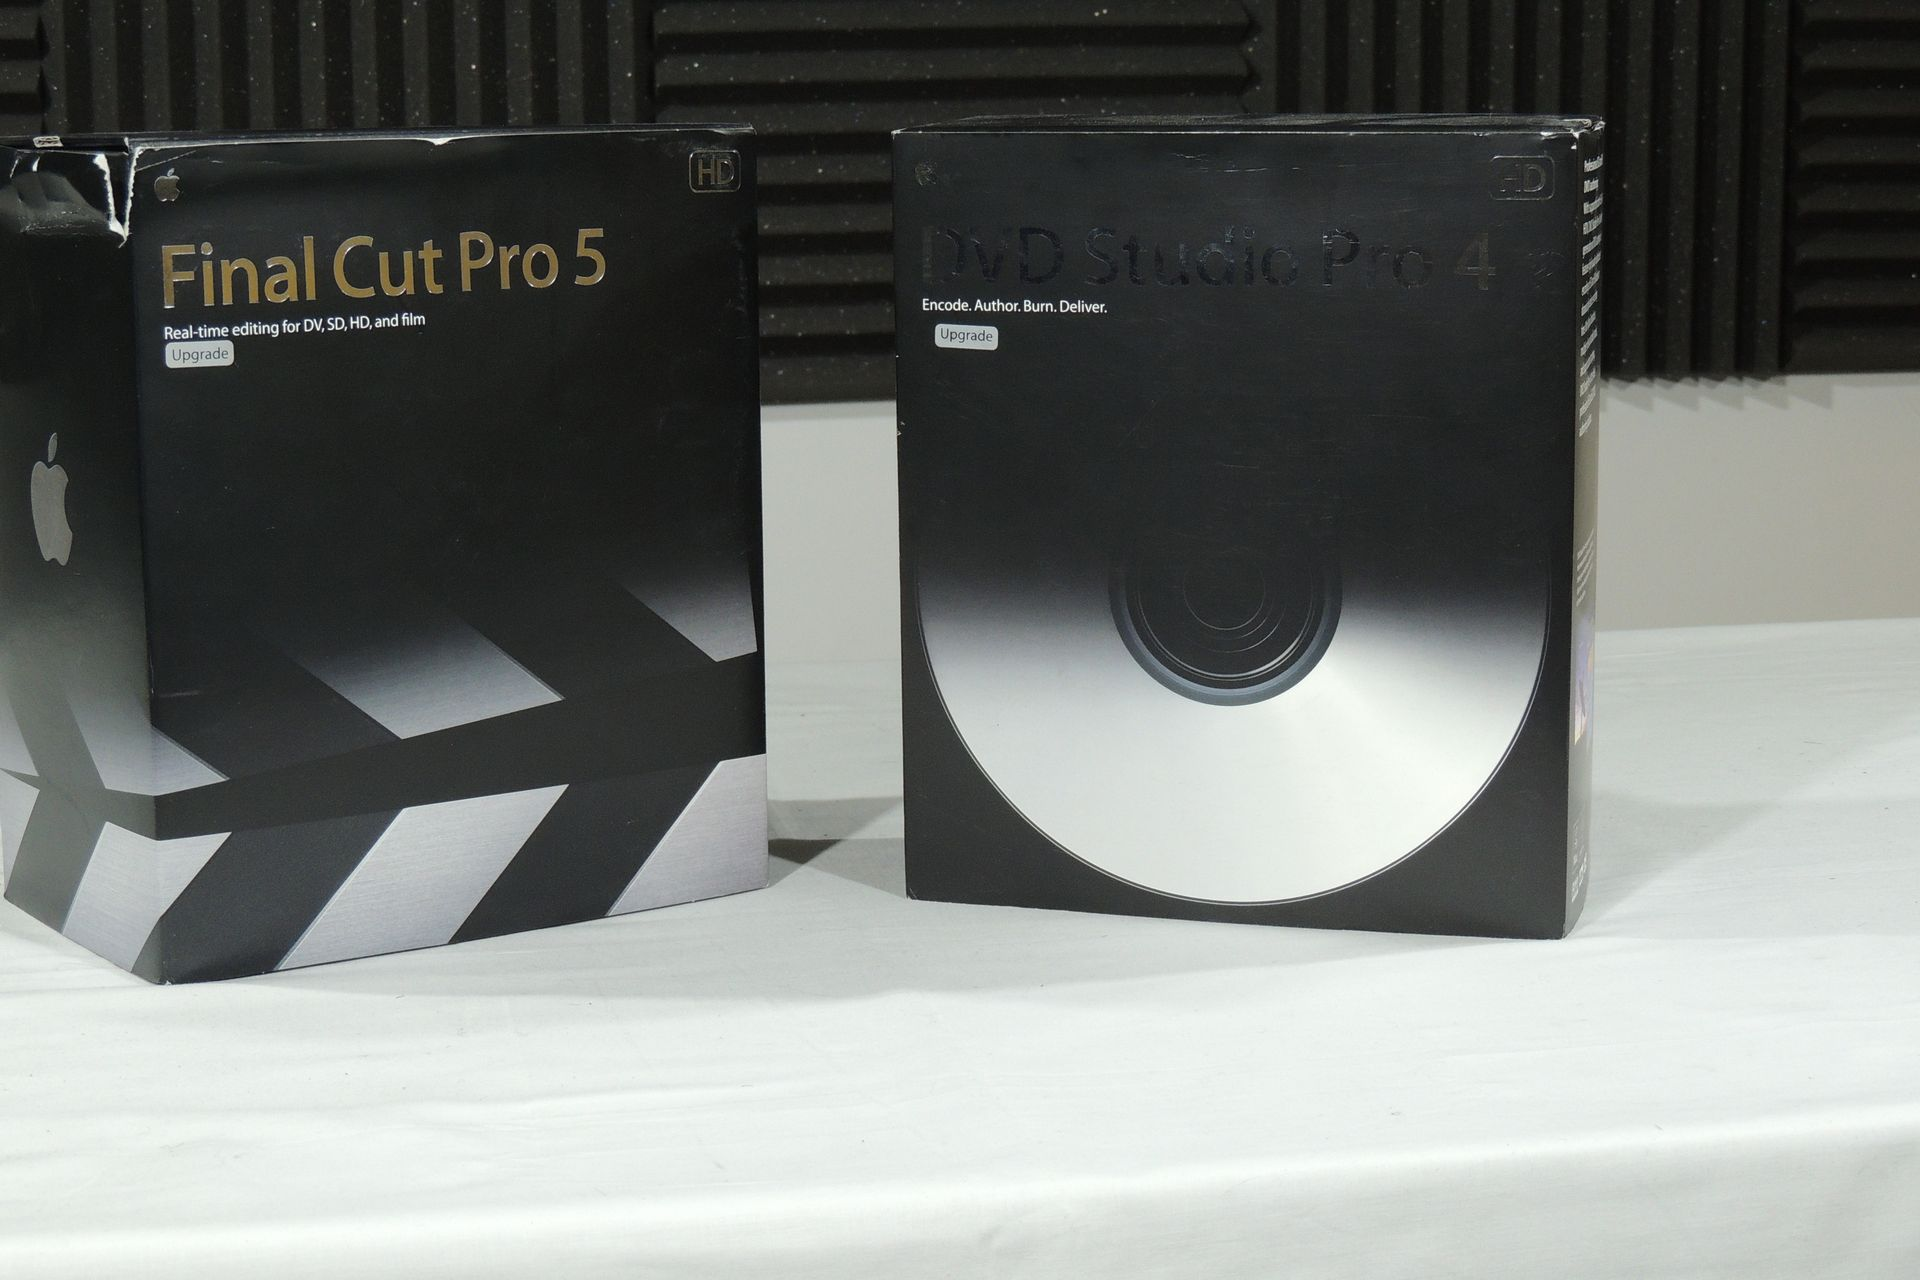 APPLE FINAL CUT PRO 5 & DVD STUDIO PRO 4 UPGRADES